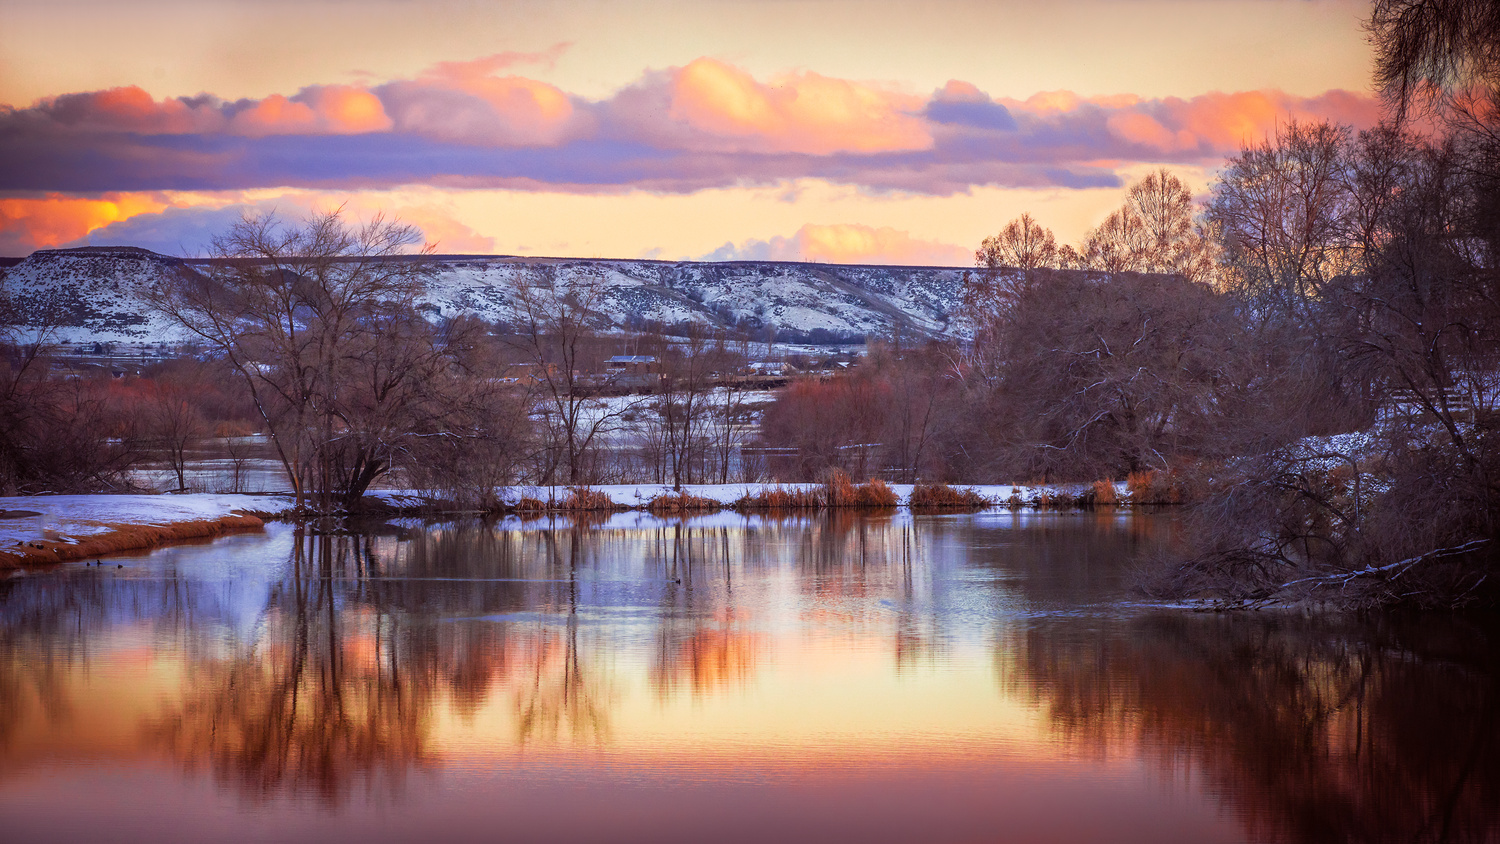 Warmth in the Cold by Jeff Walsh